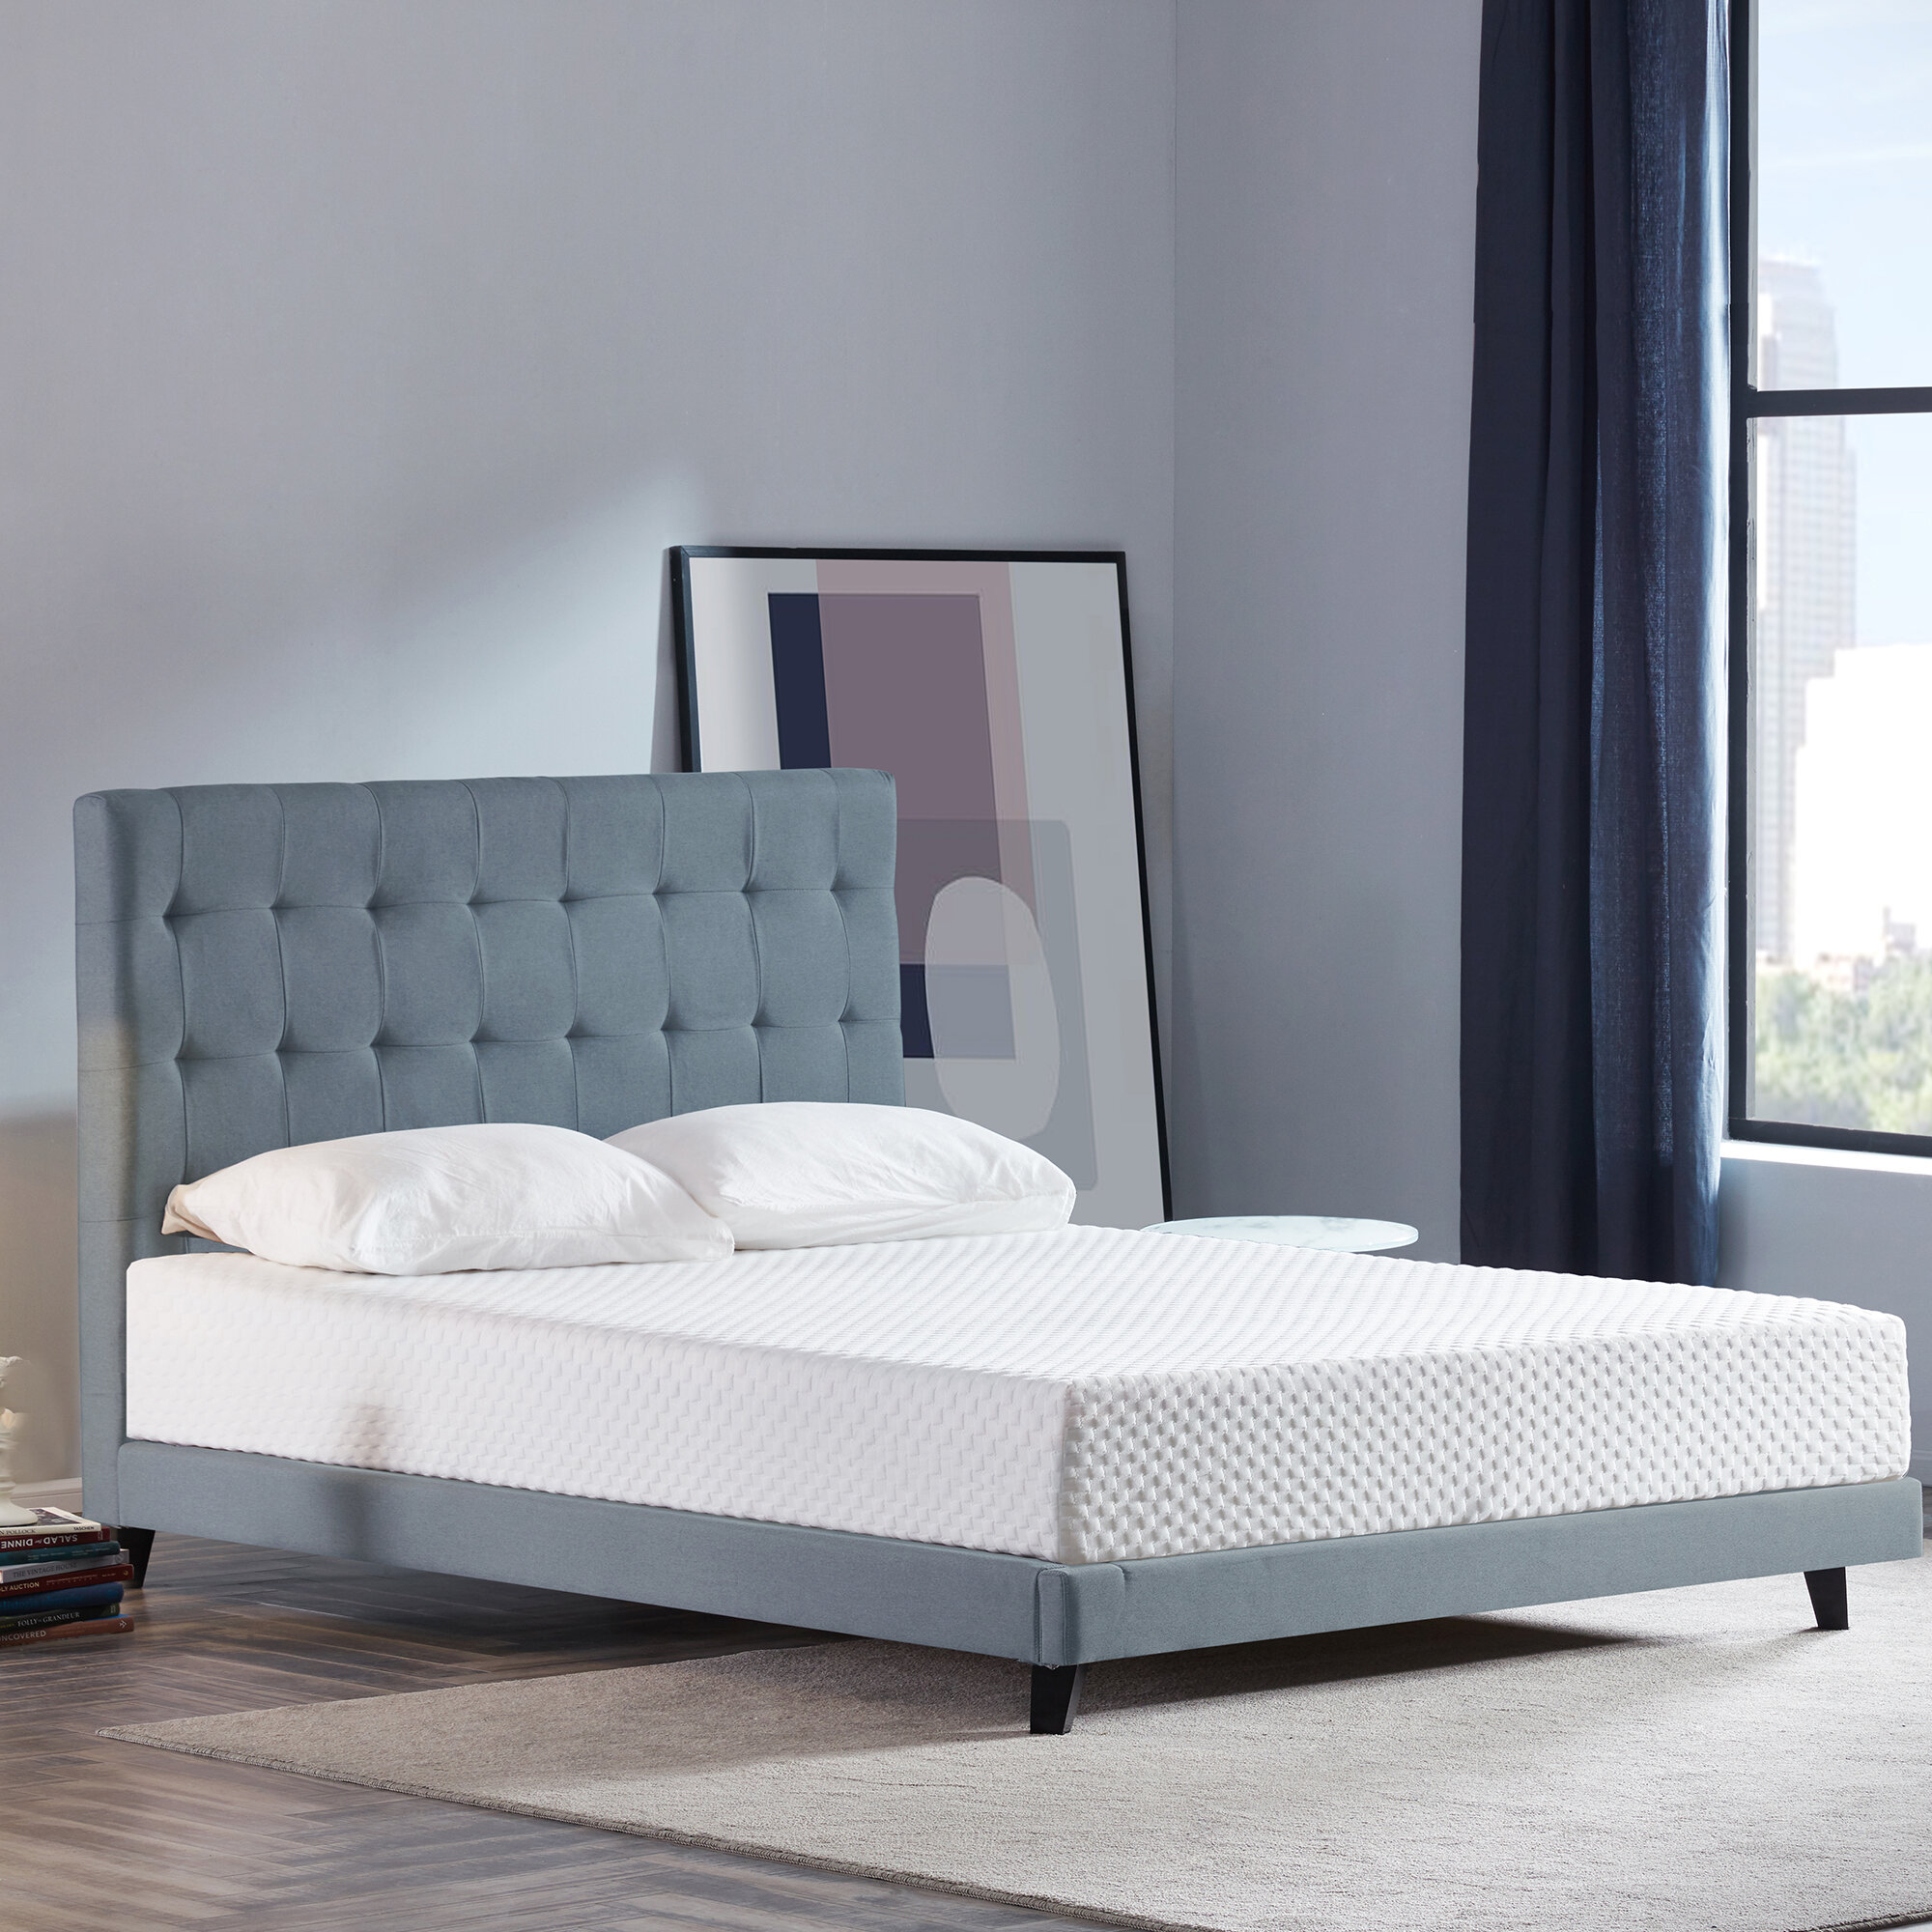 Sofa Bed Mattress Under 8 Thick Memory Foam Mattresses You Ll Love In 2021 Wayfair